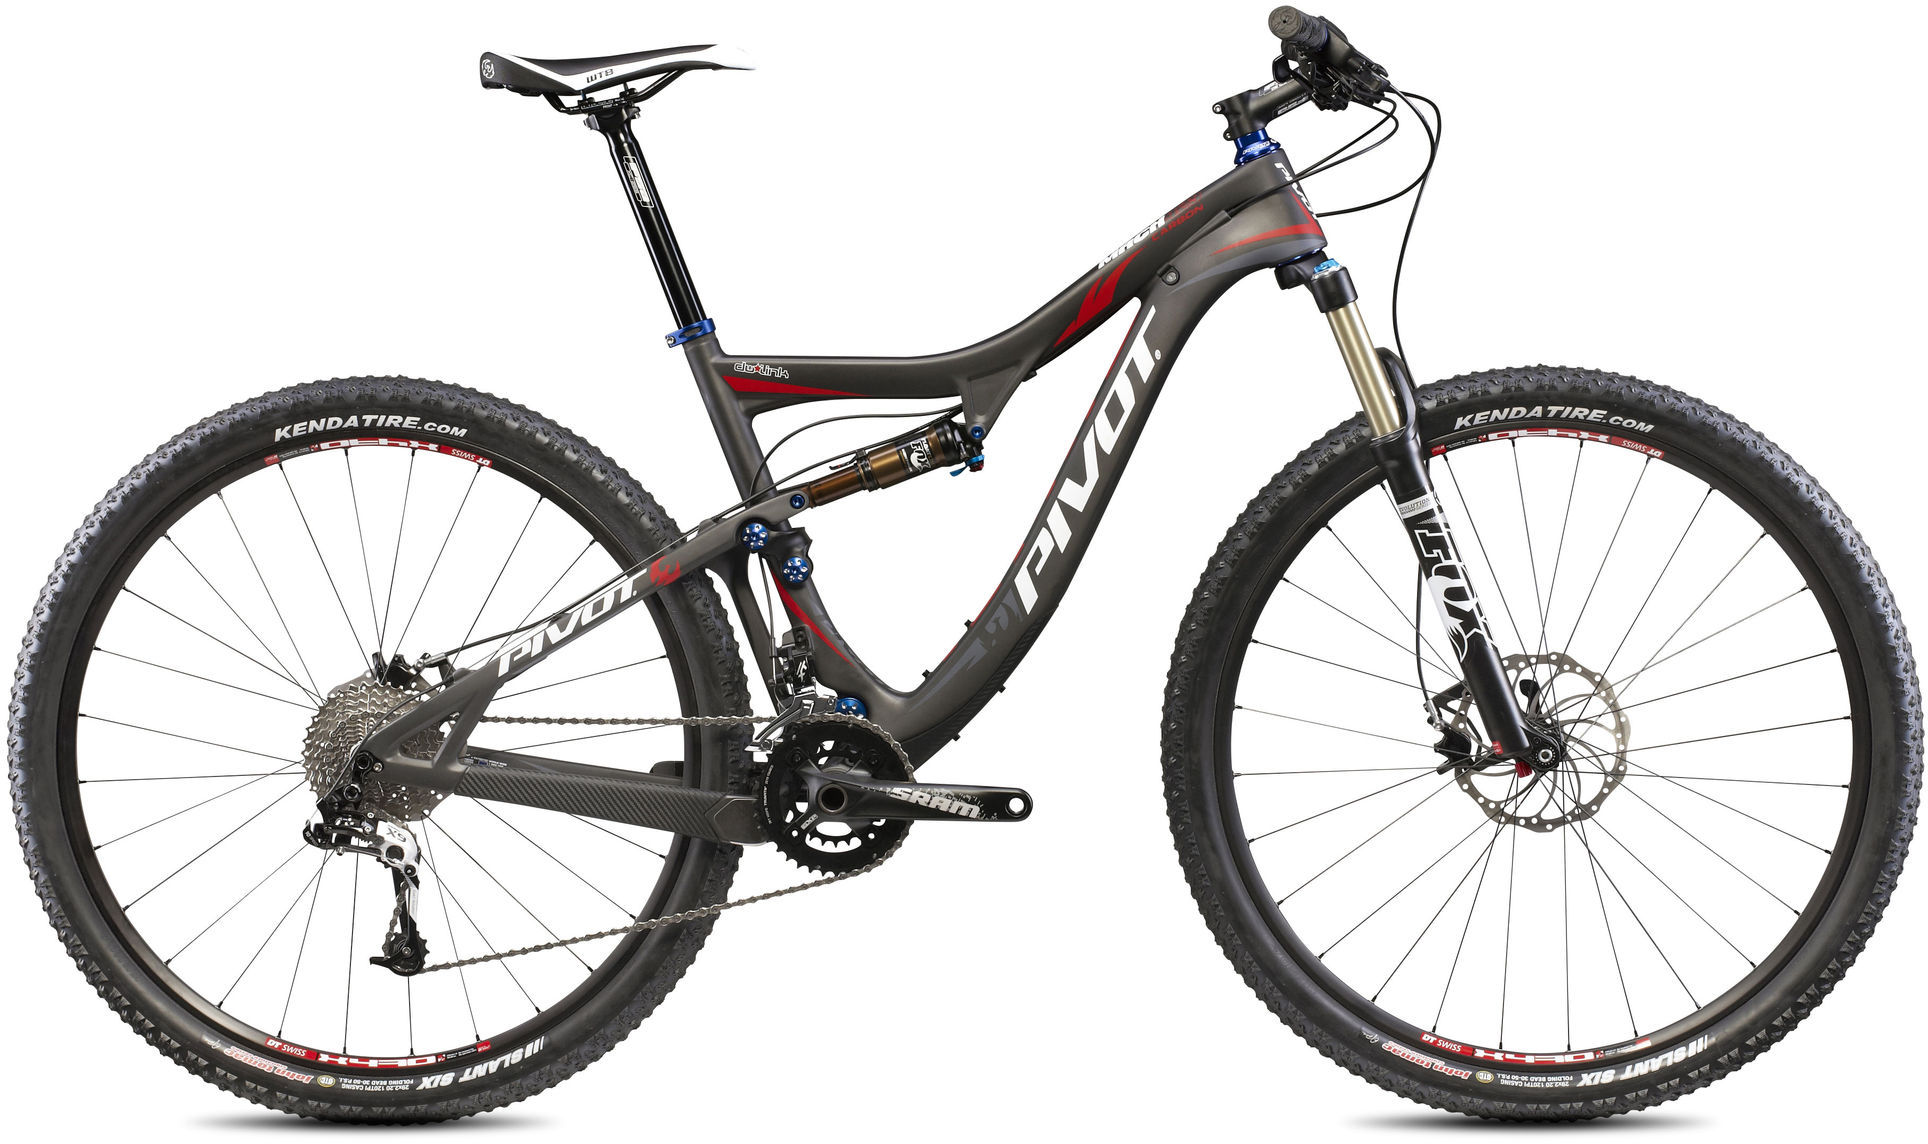 Pivot Mach 429 29er Slx Xt 2014 Review The Bike List